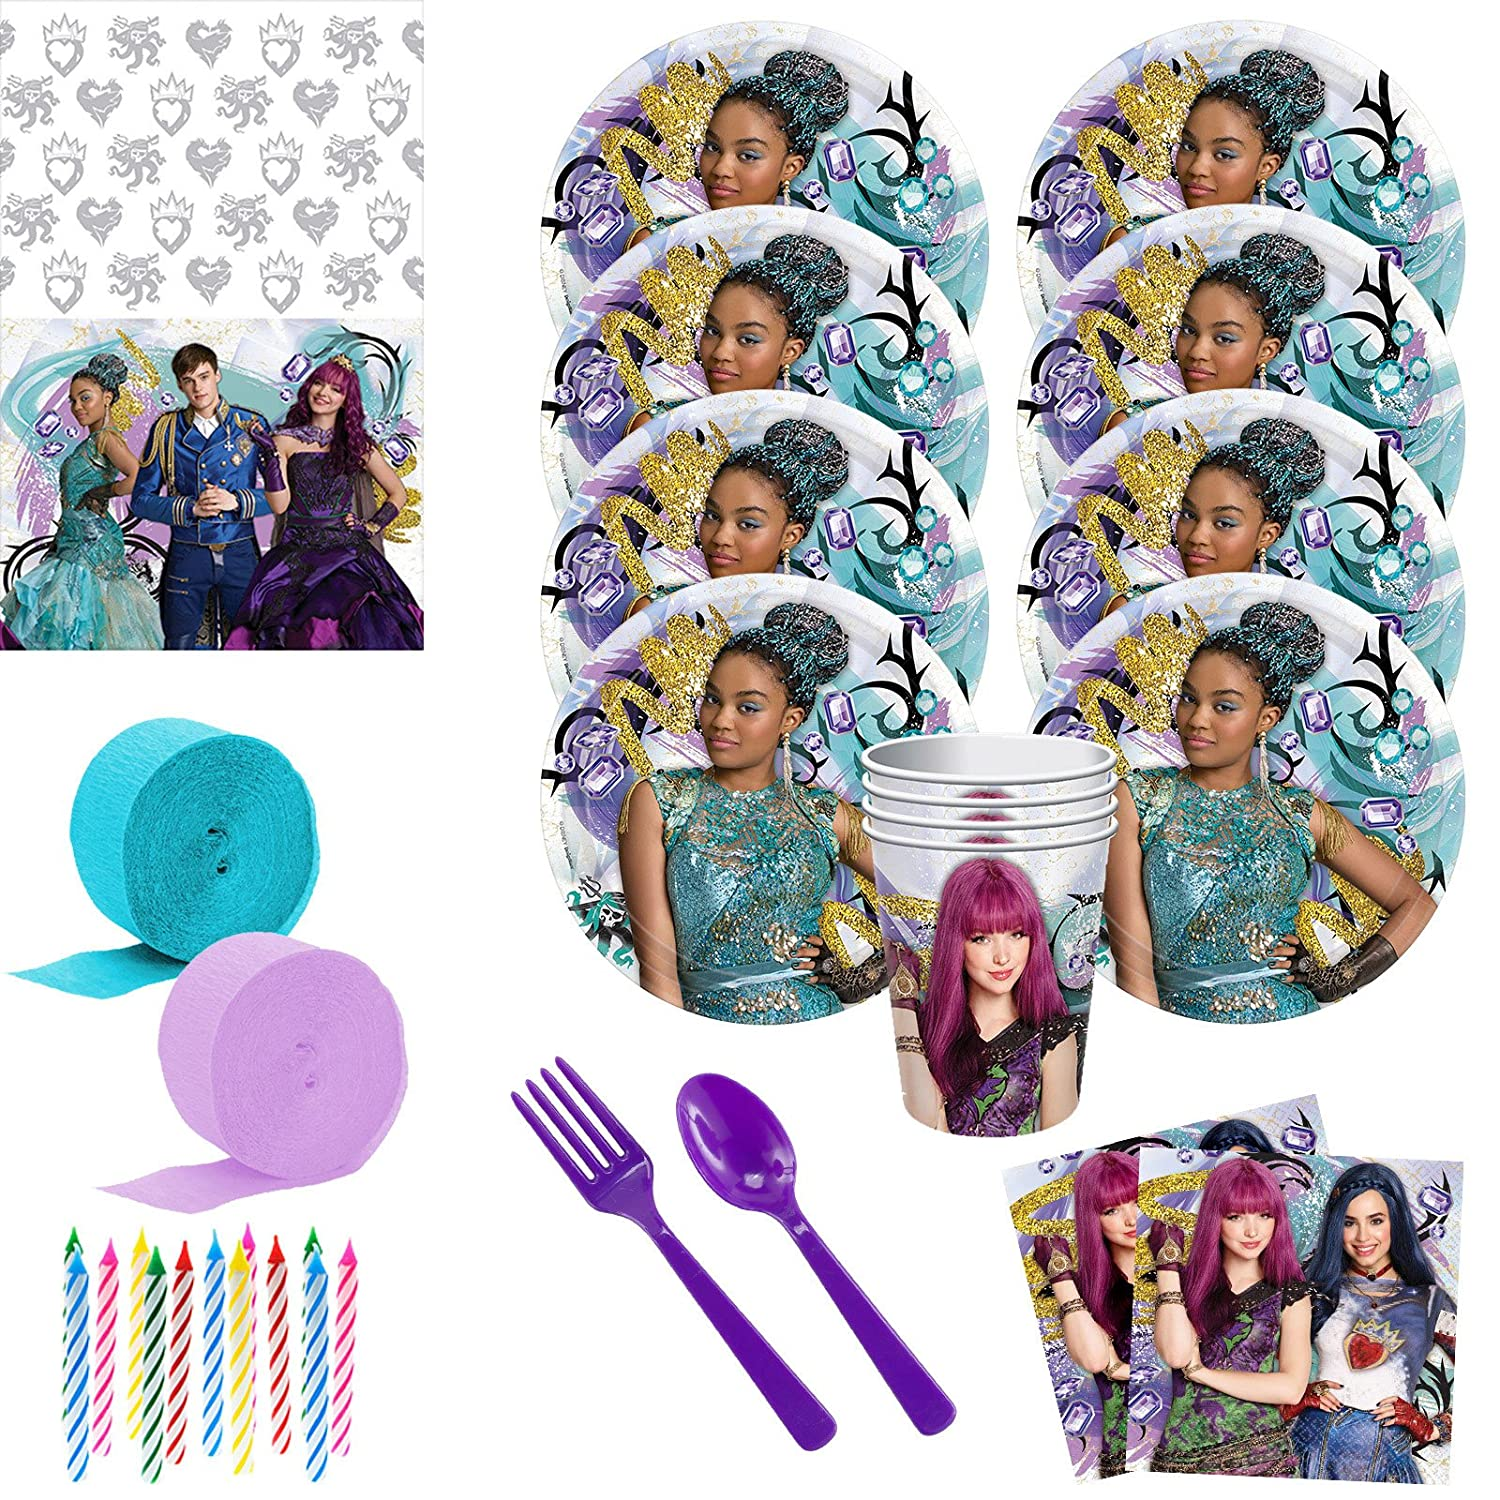 Disney Descendants Deluxe Birthday Party Supply Kit - (Serves 8)